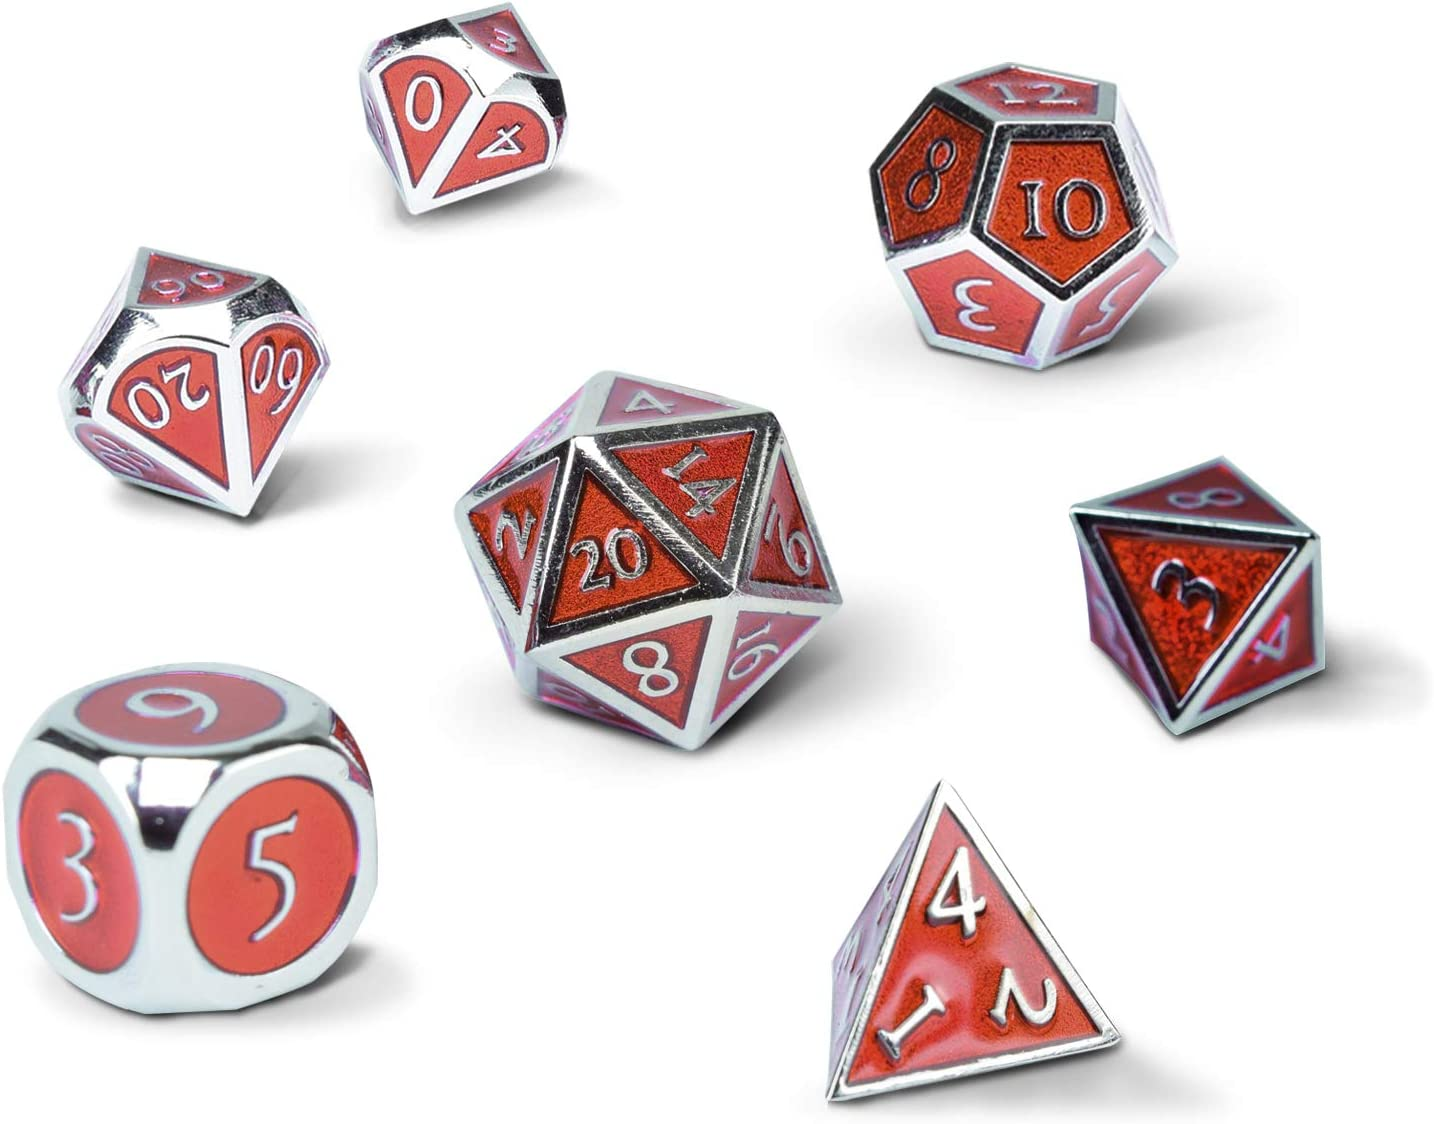 Set of 7 Red Metal Polyhedral Dice Enamel with Tin Storage Case by RNK Gaming